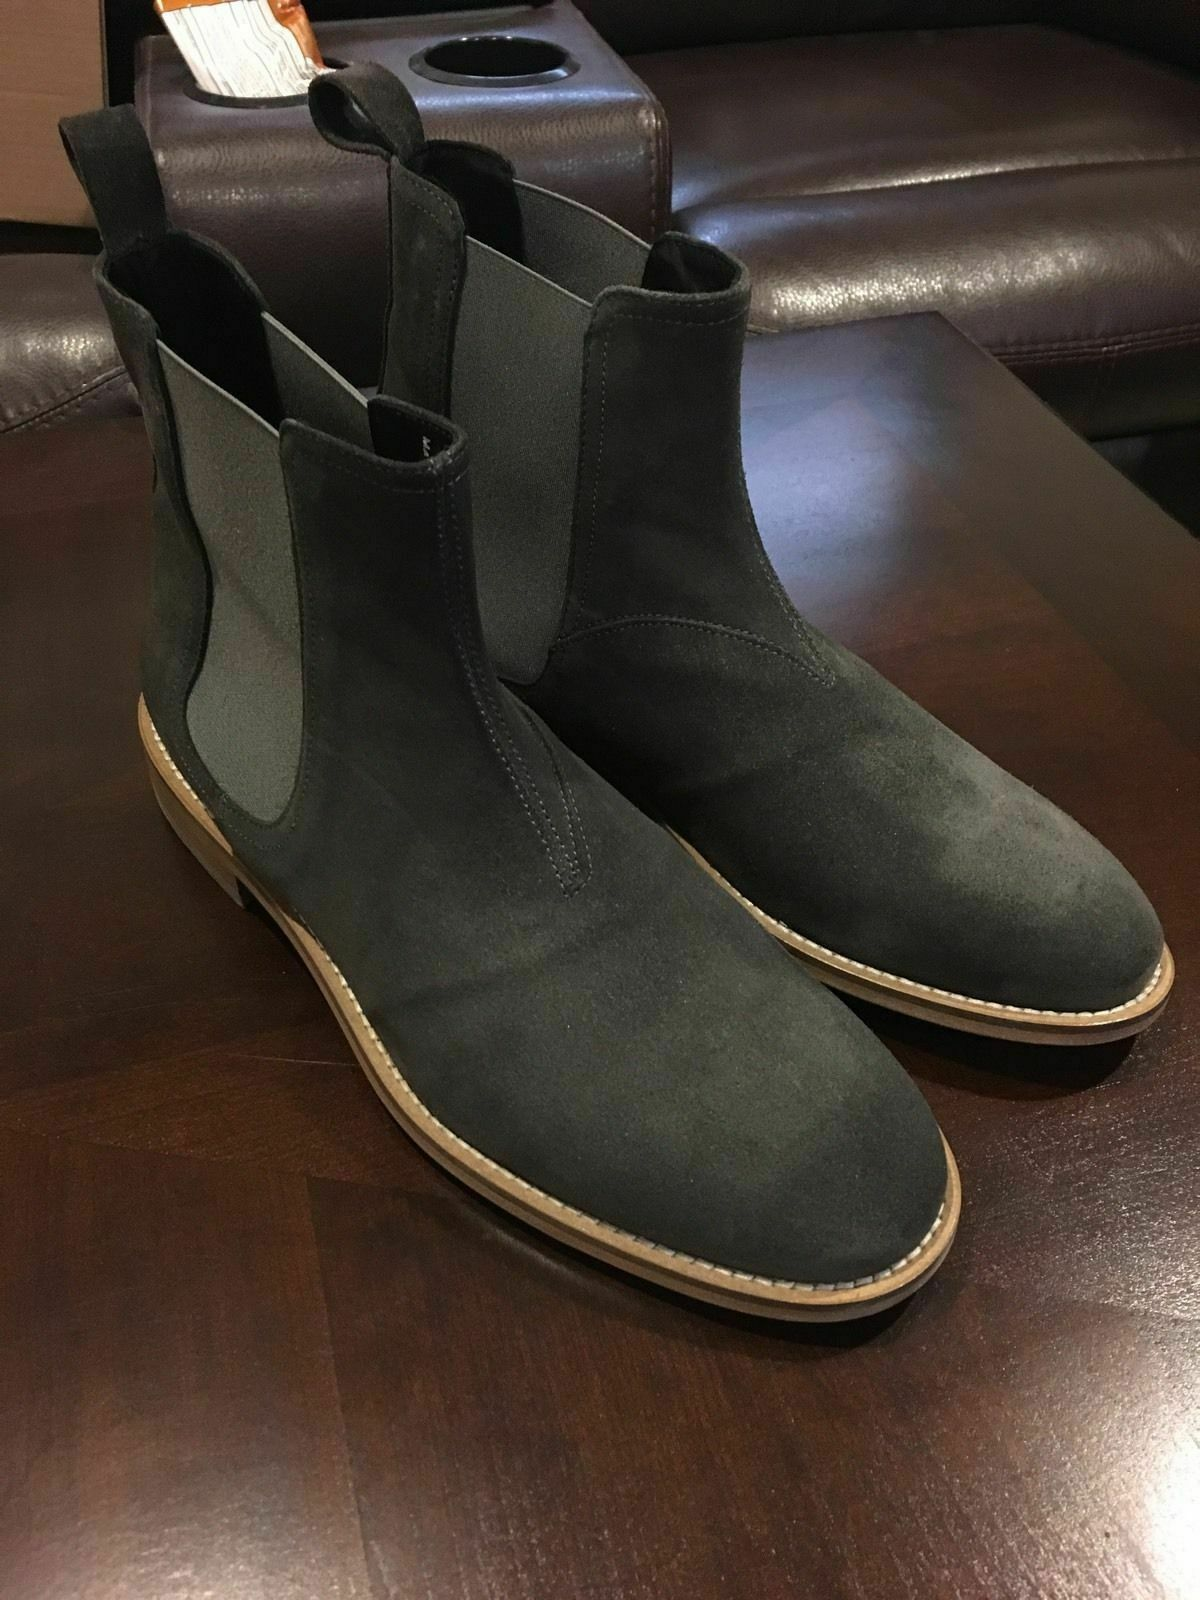 Mens Handmade Boots Dark Grey Suede Chelsea Ankle Formal Wear Casual Dress shoes